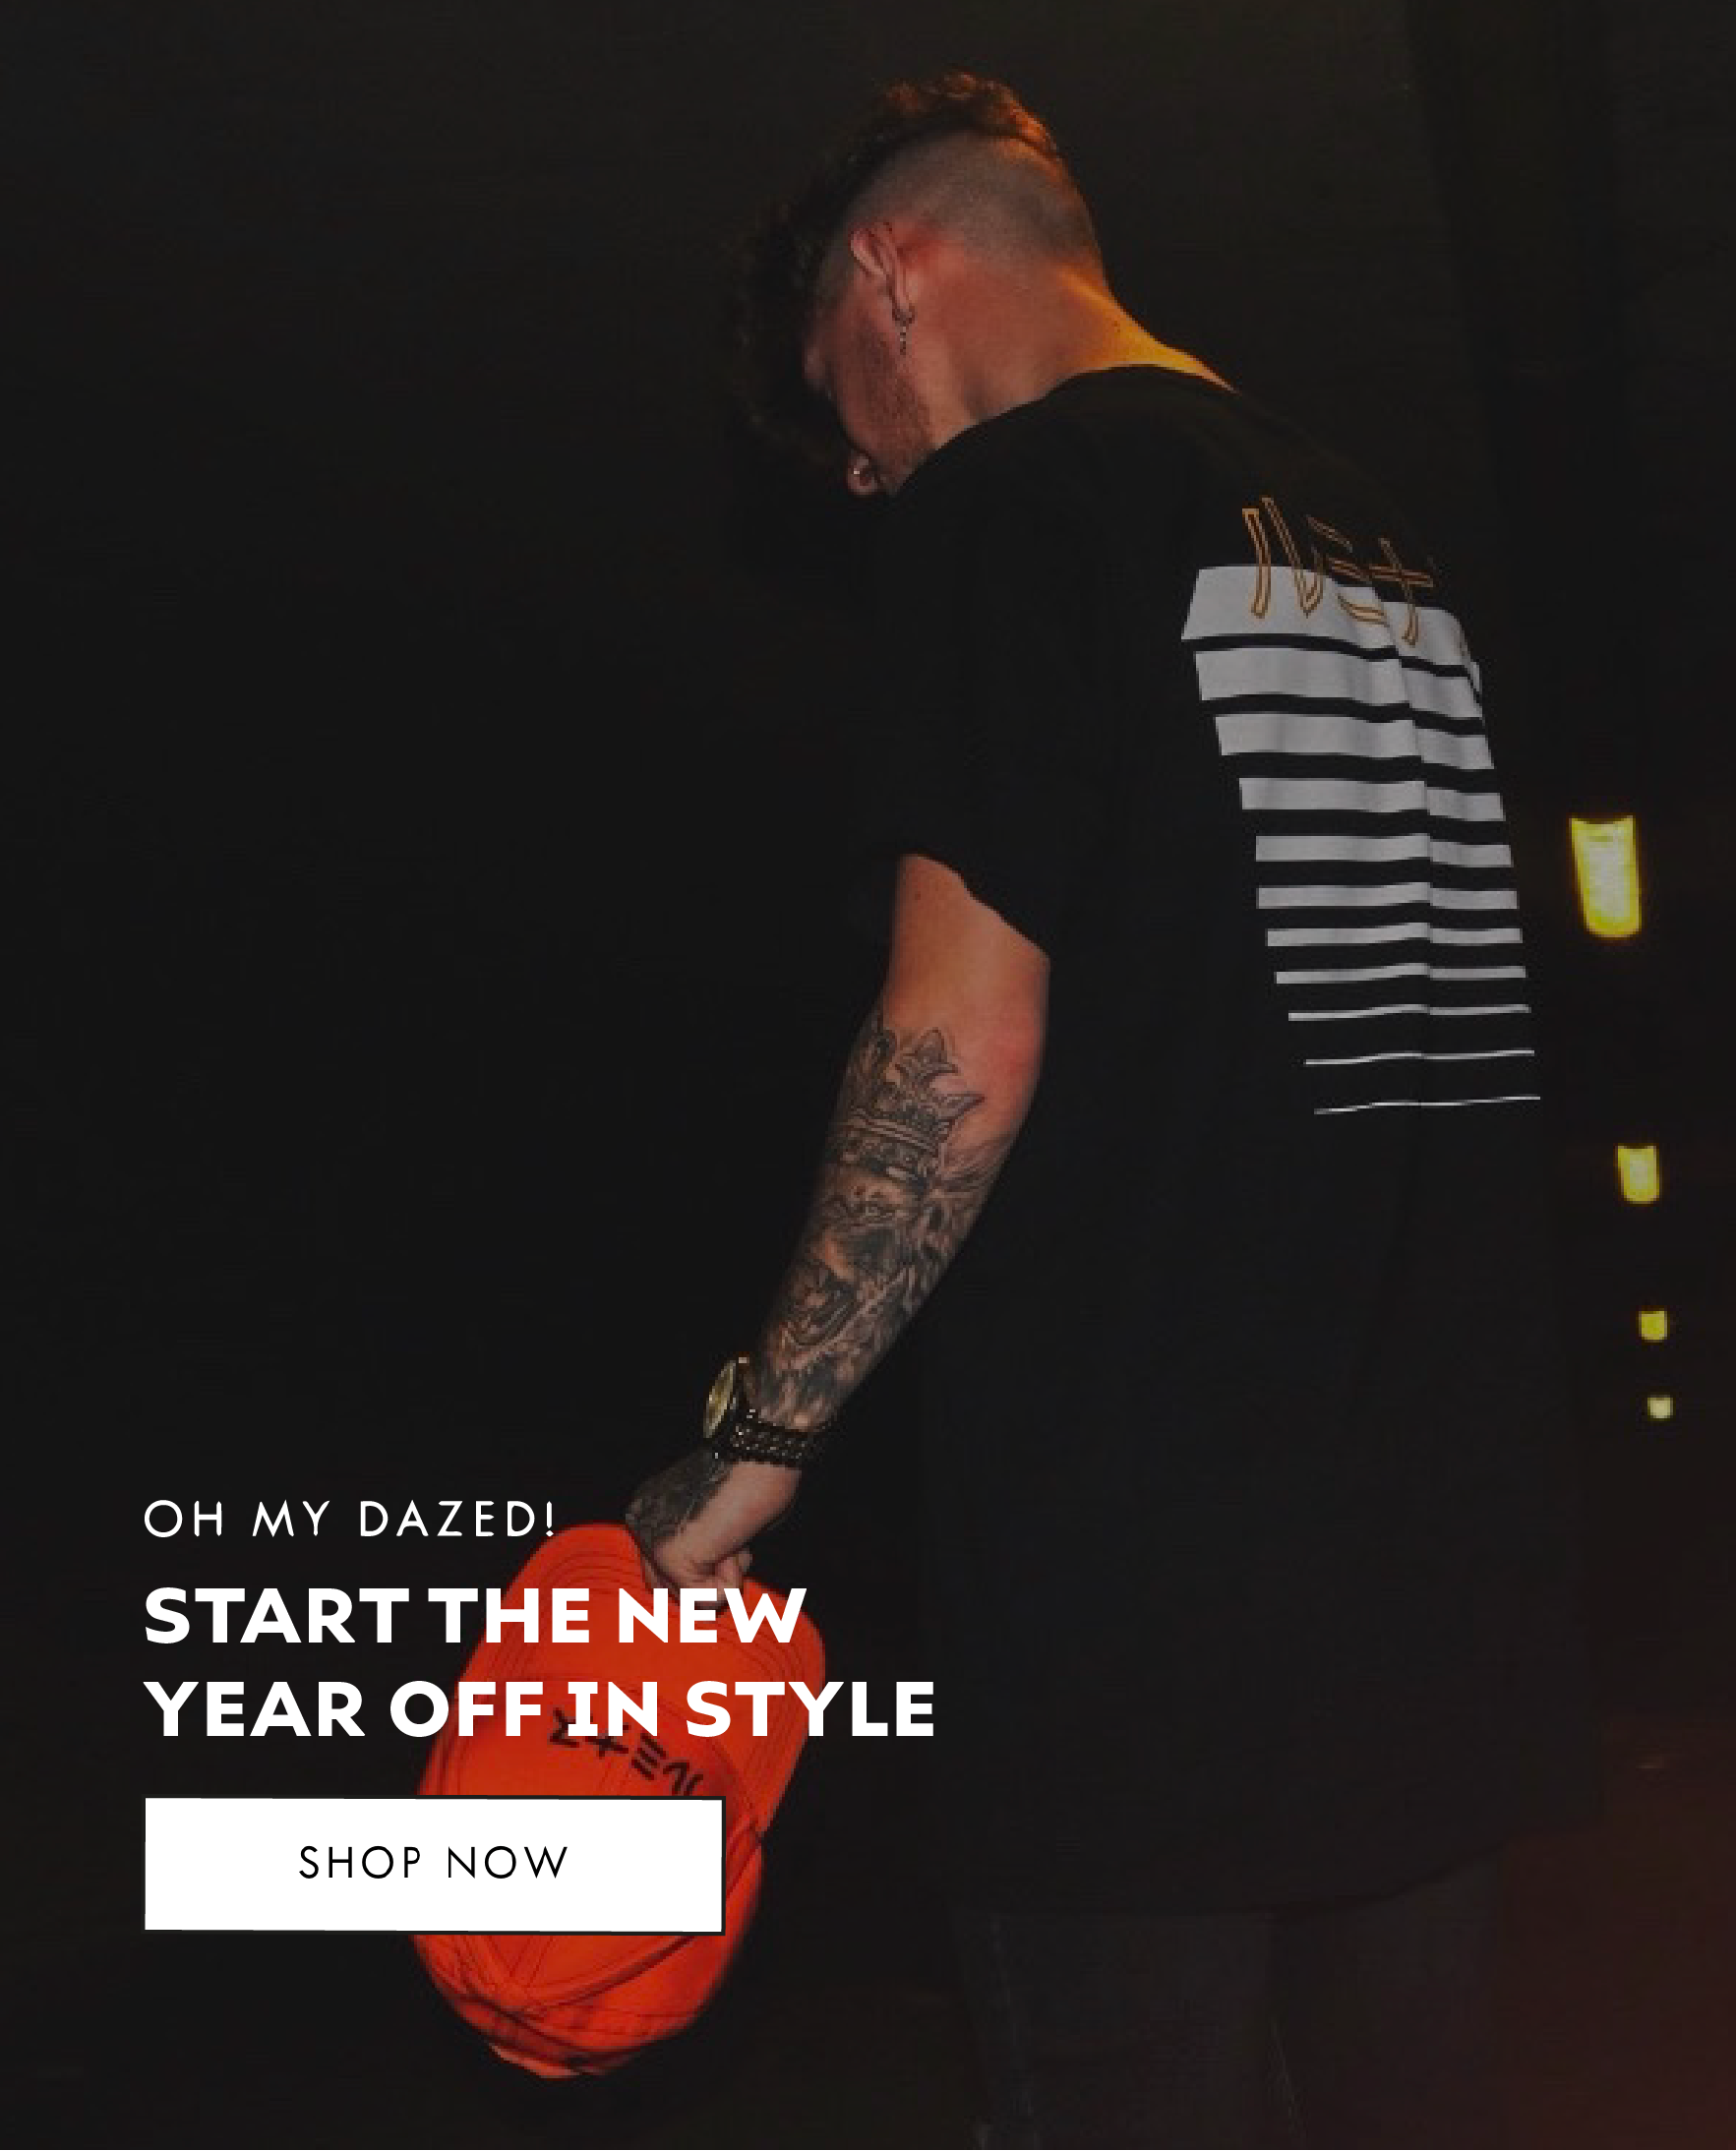 Oh My Dazed! - Start The New Year Off In Style